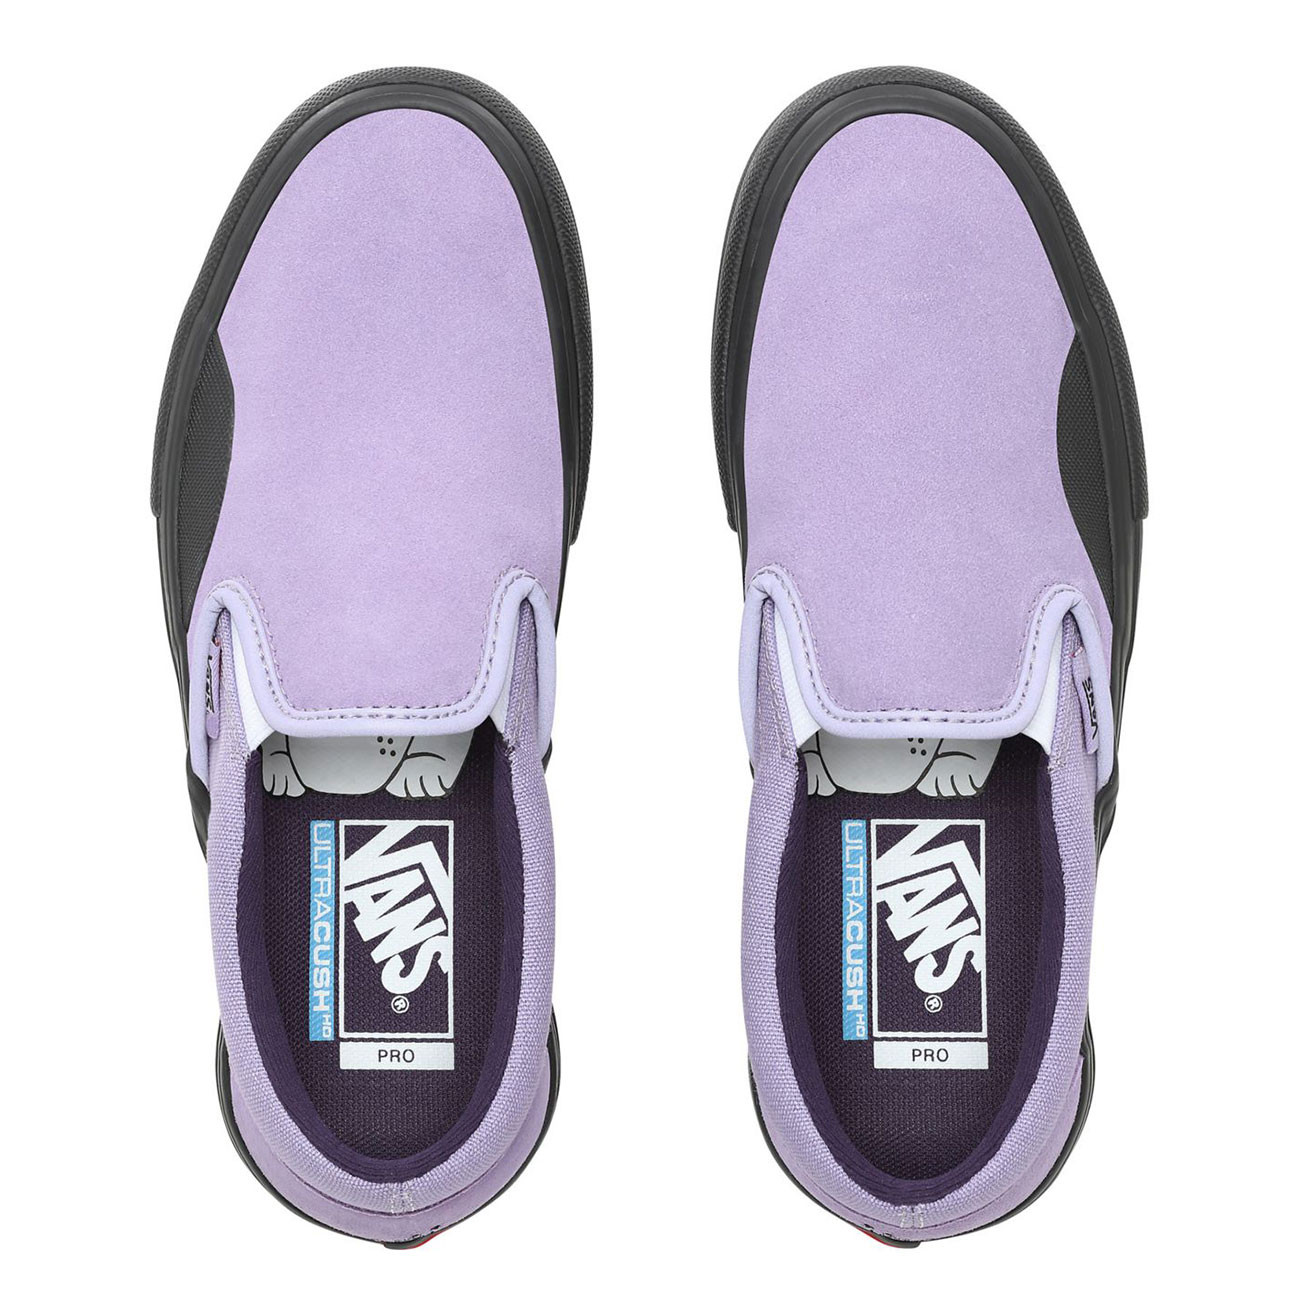 Slip On Pro lizzie armanto daybreakblack